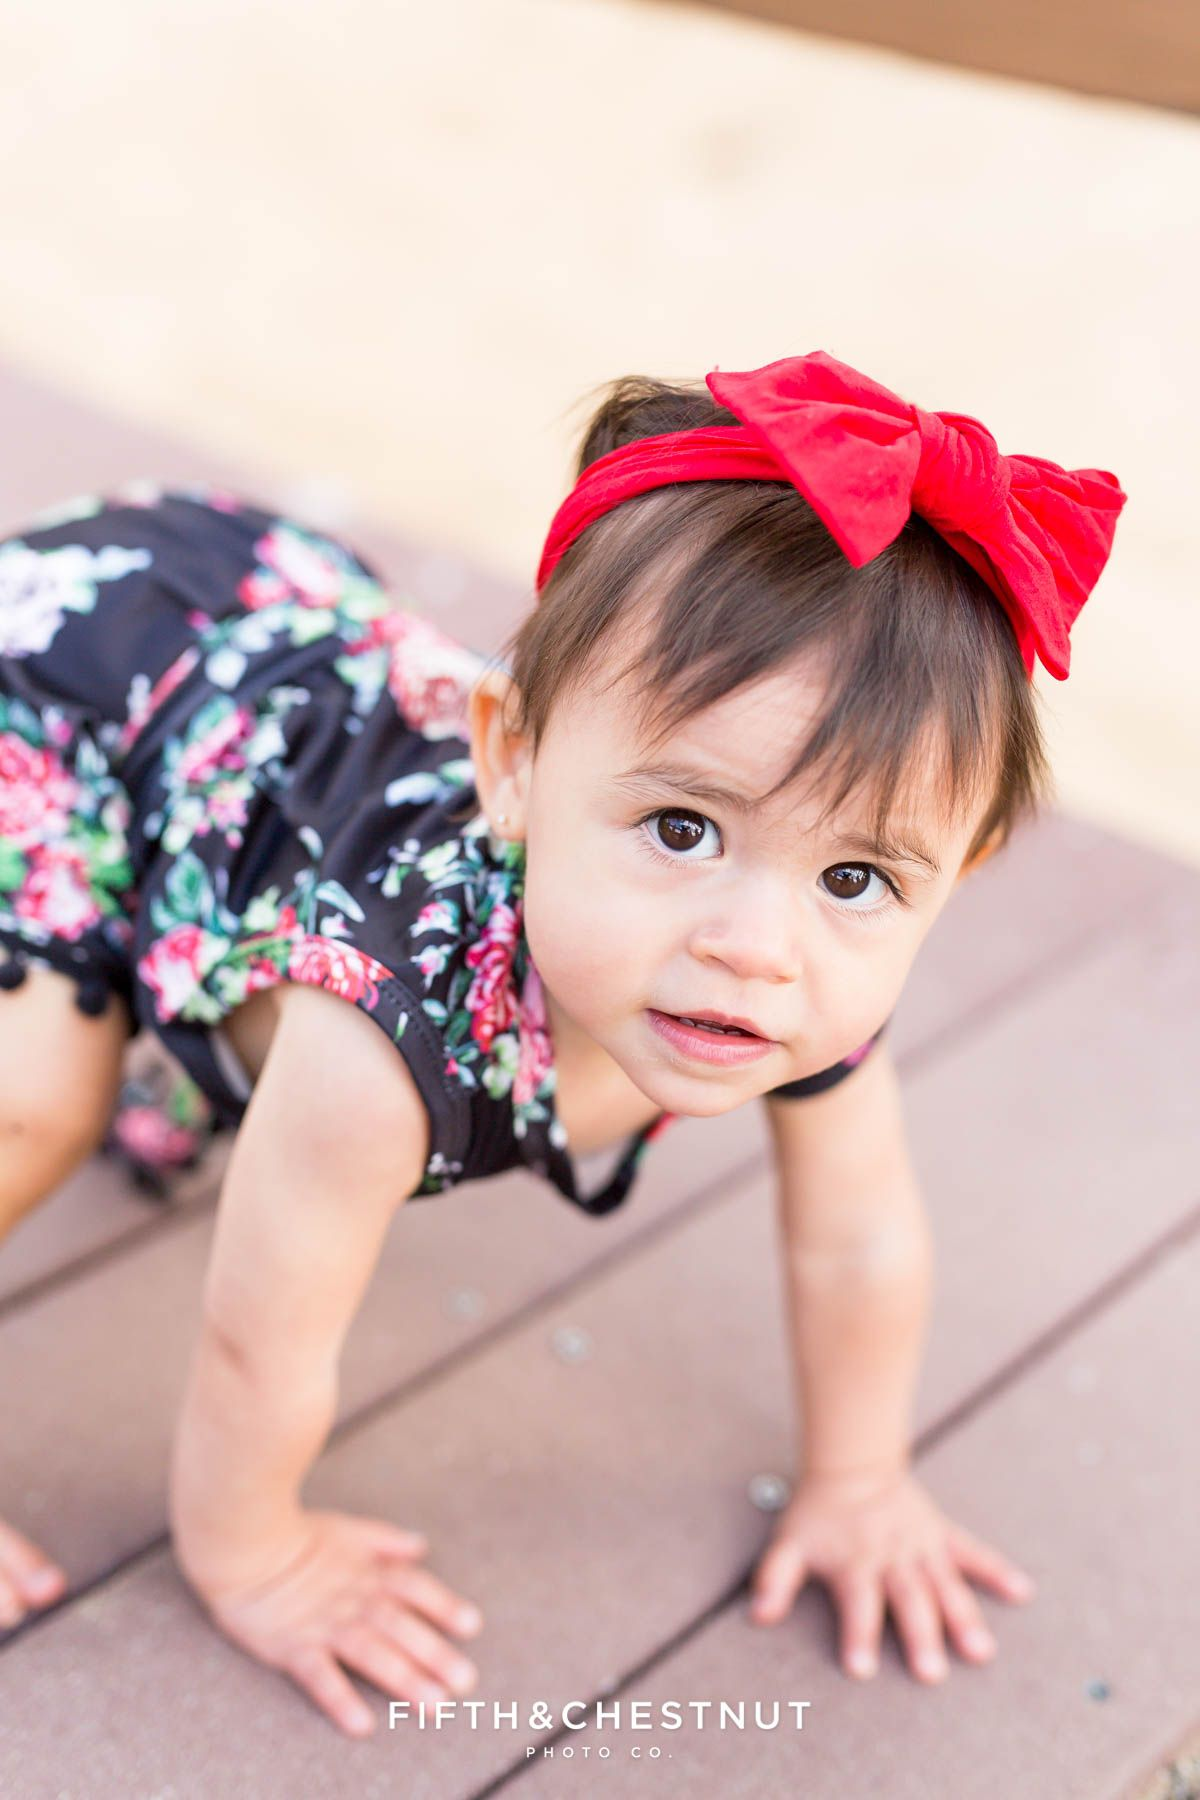 To acquire Wear to what for 1-year old portraits picture trends